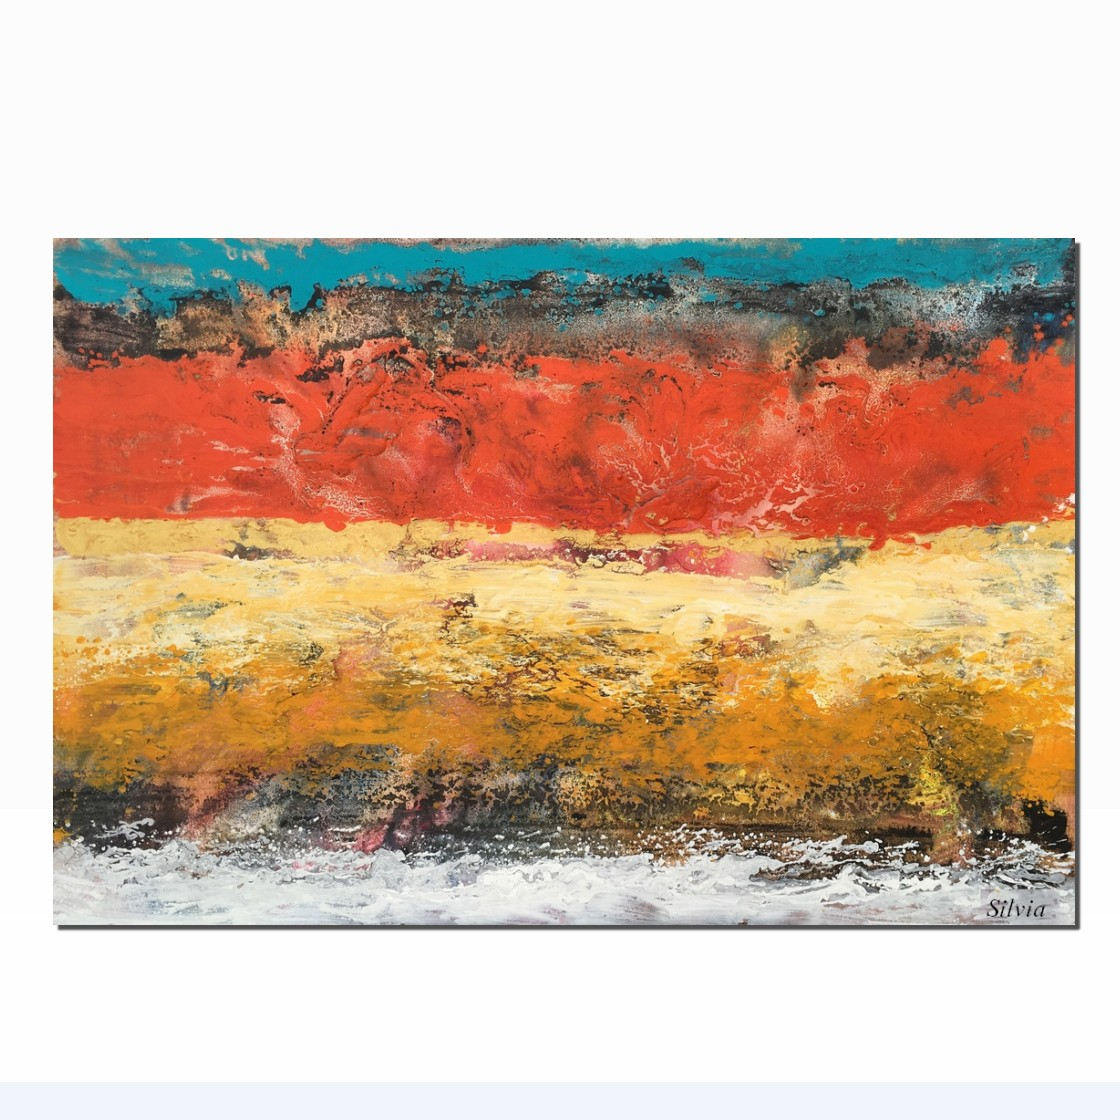 Abstract Wall Art, Large Abstract Painting, Acrylic Painting, Living Room Canvas Art - Silvia Home Craft